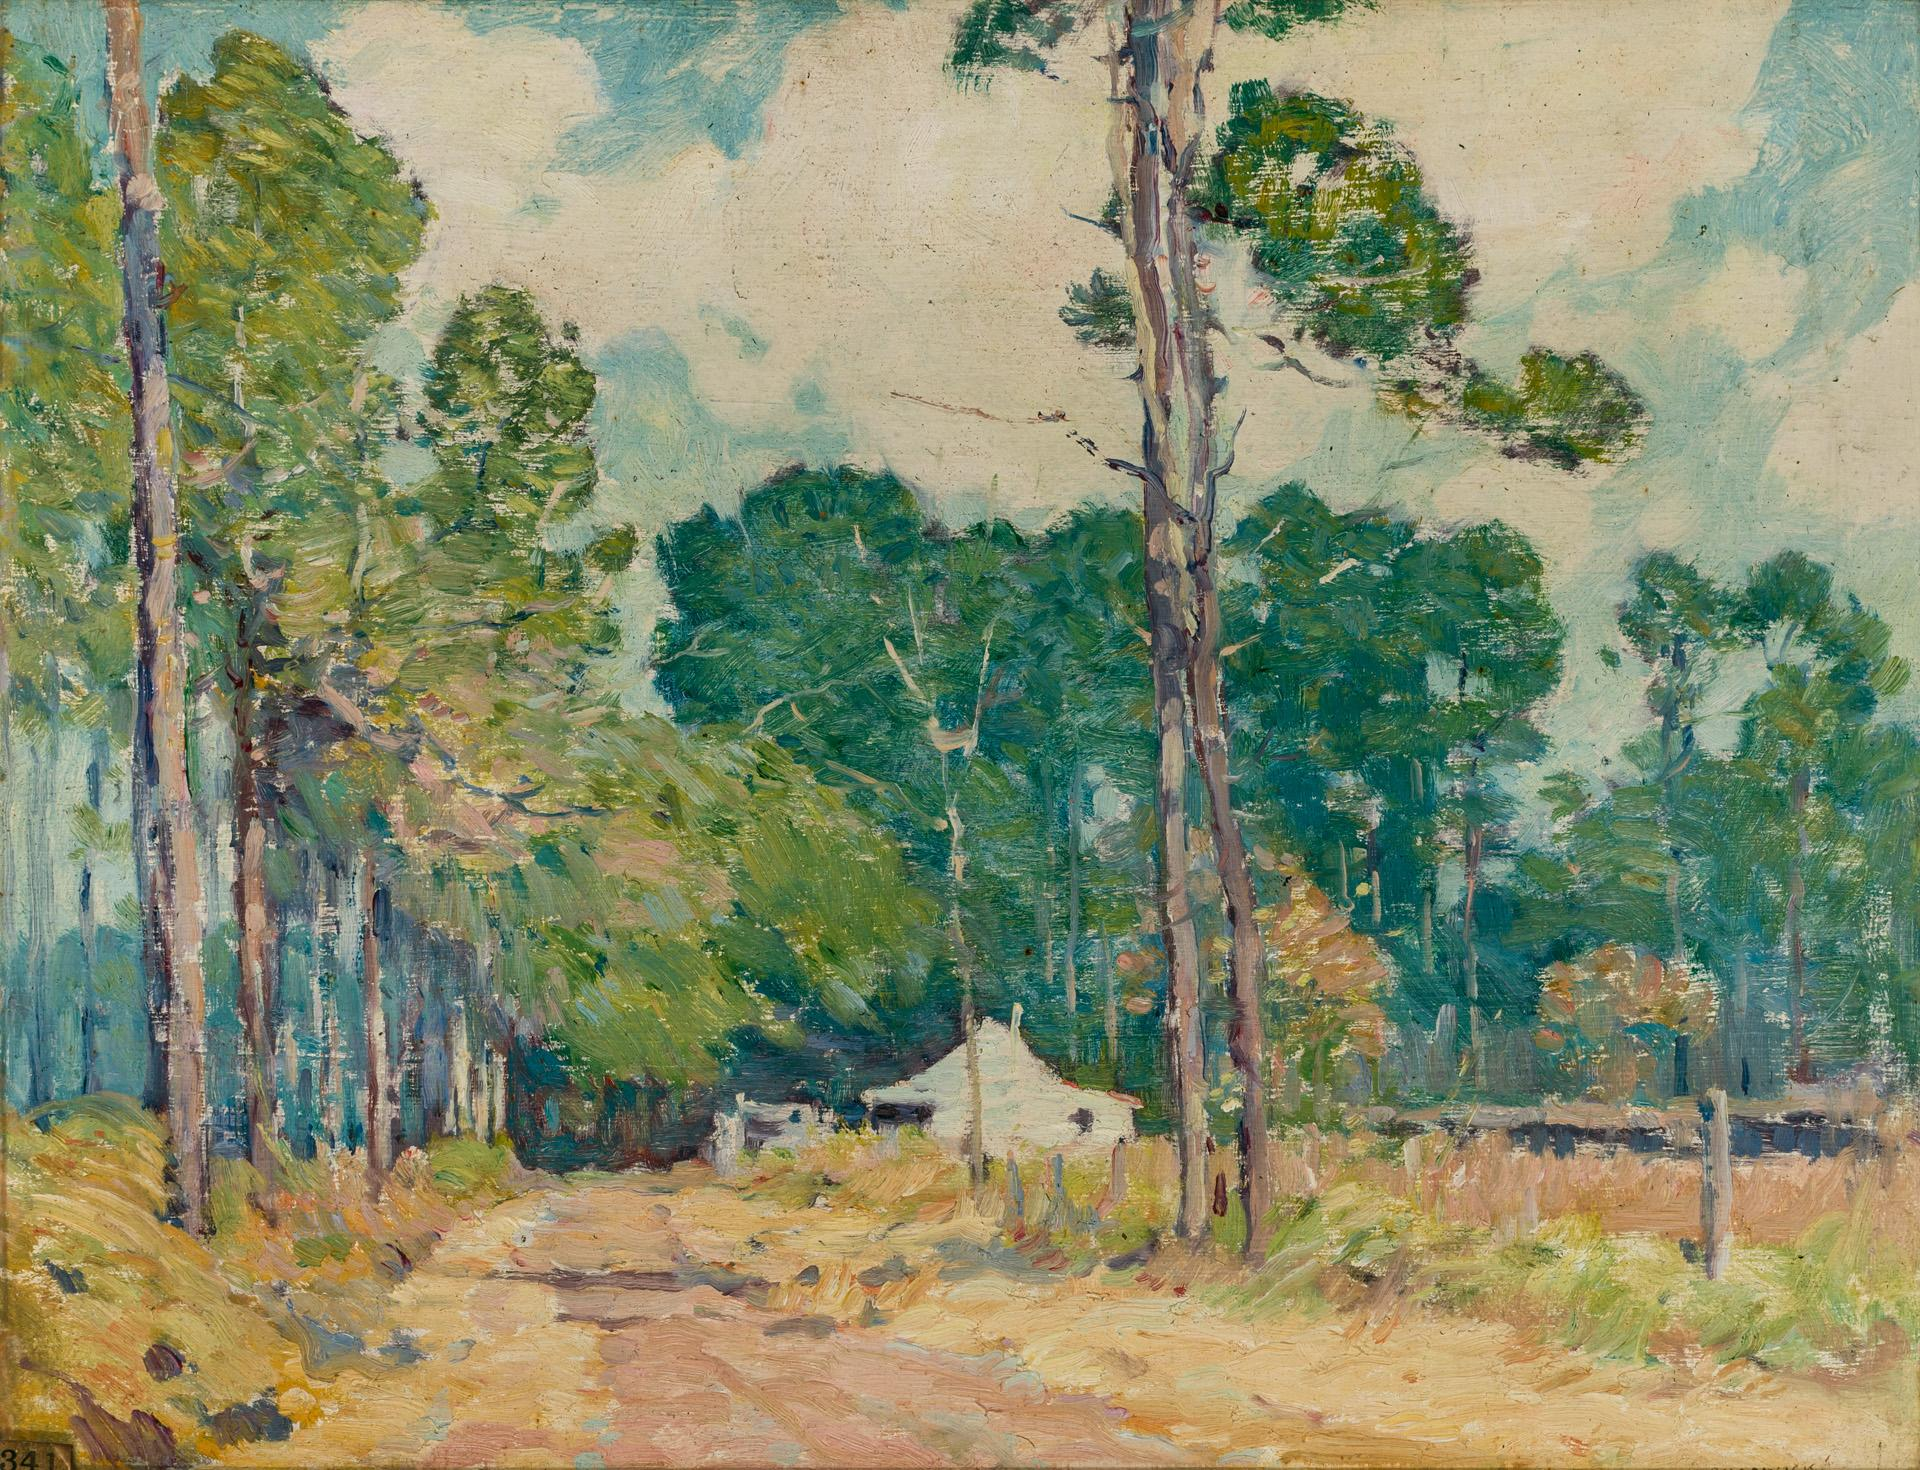 """WILLIAM CHADWICK, American (1879-1962), The Path Home, oil on board, signed lower right """"W. Chadwick"""", 14 1/4 x 18 1/4 inches"""